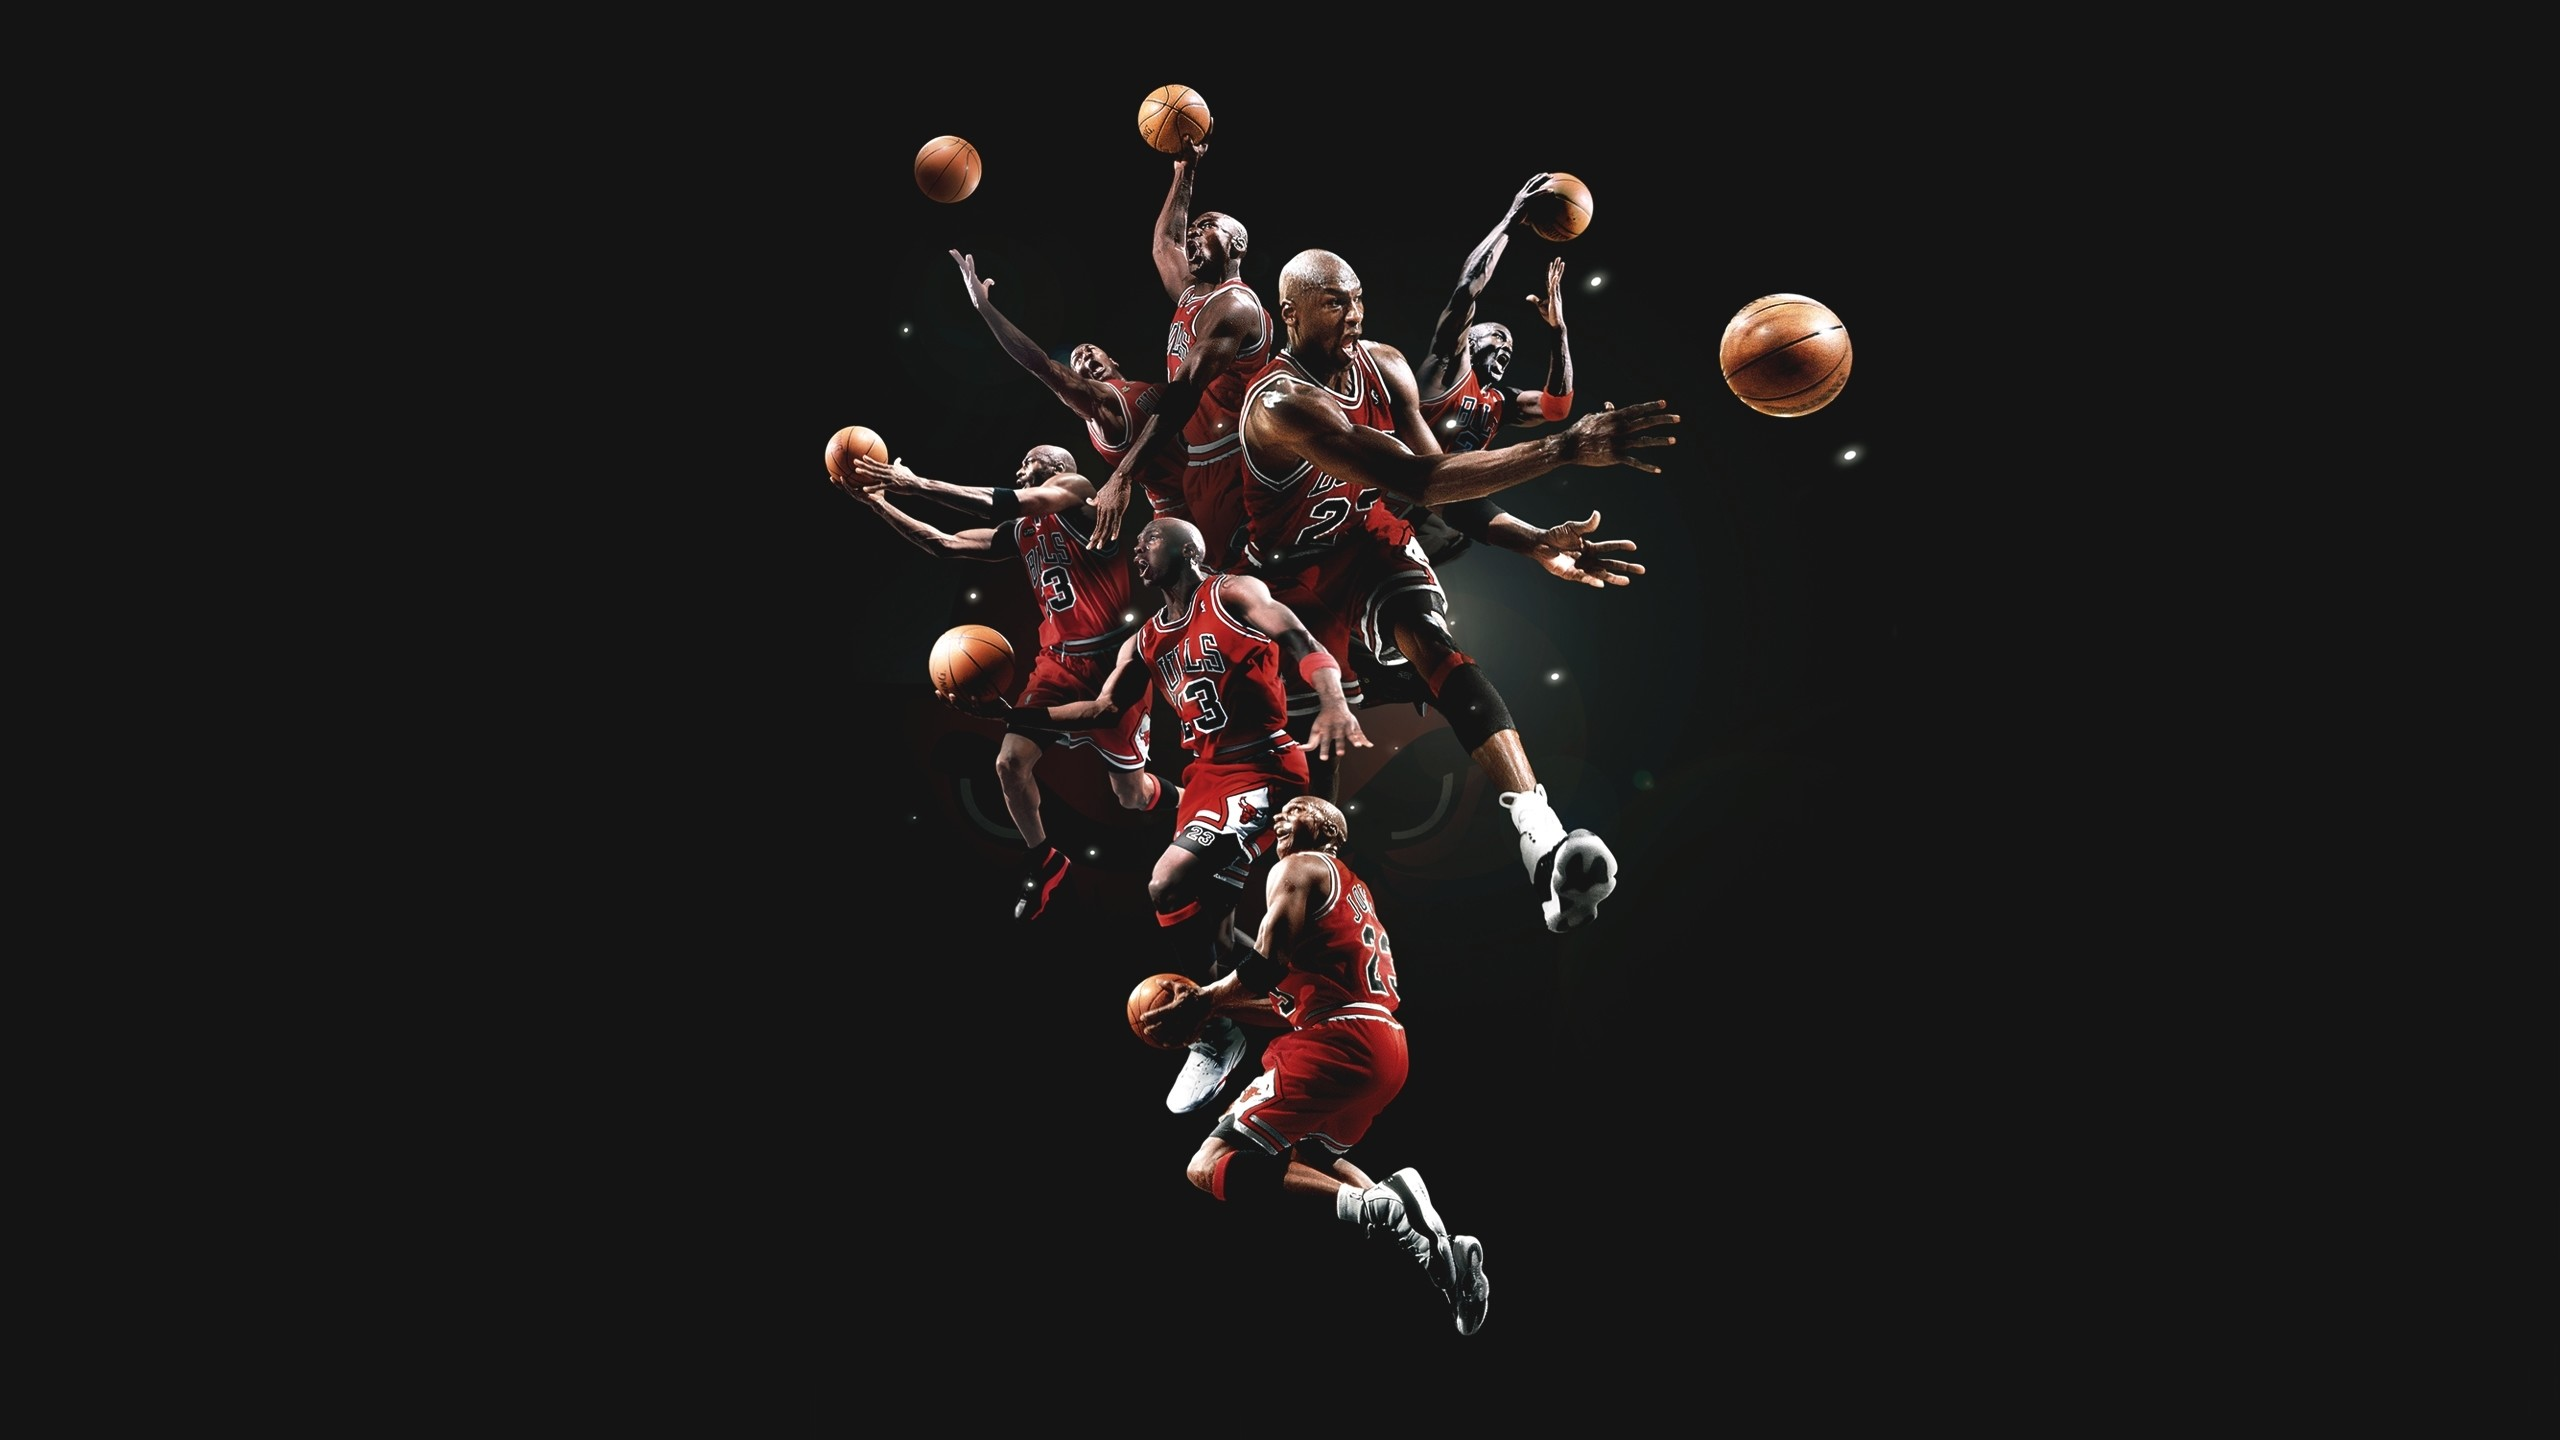 2560x1440 Michael jordan basketball chicago bulls men males action stop motion. Bulls  Wallpaper ...